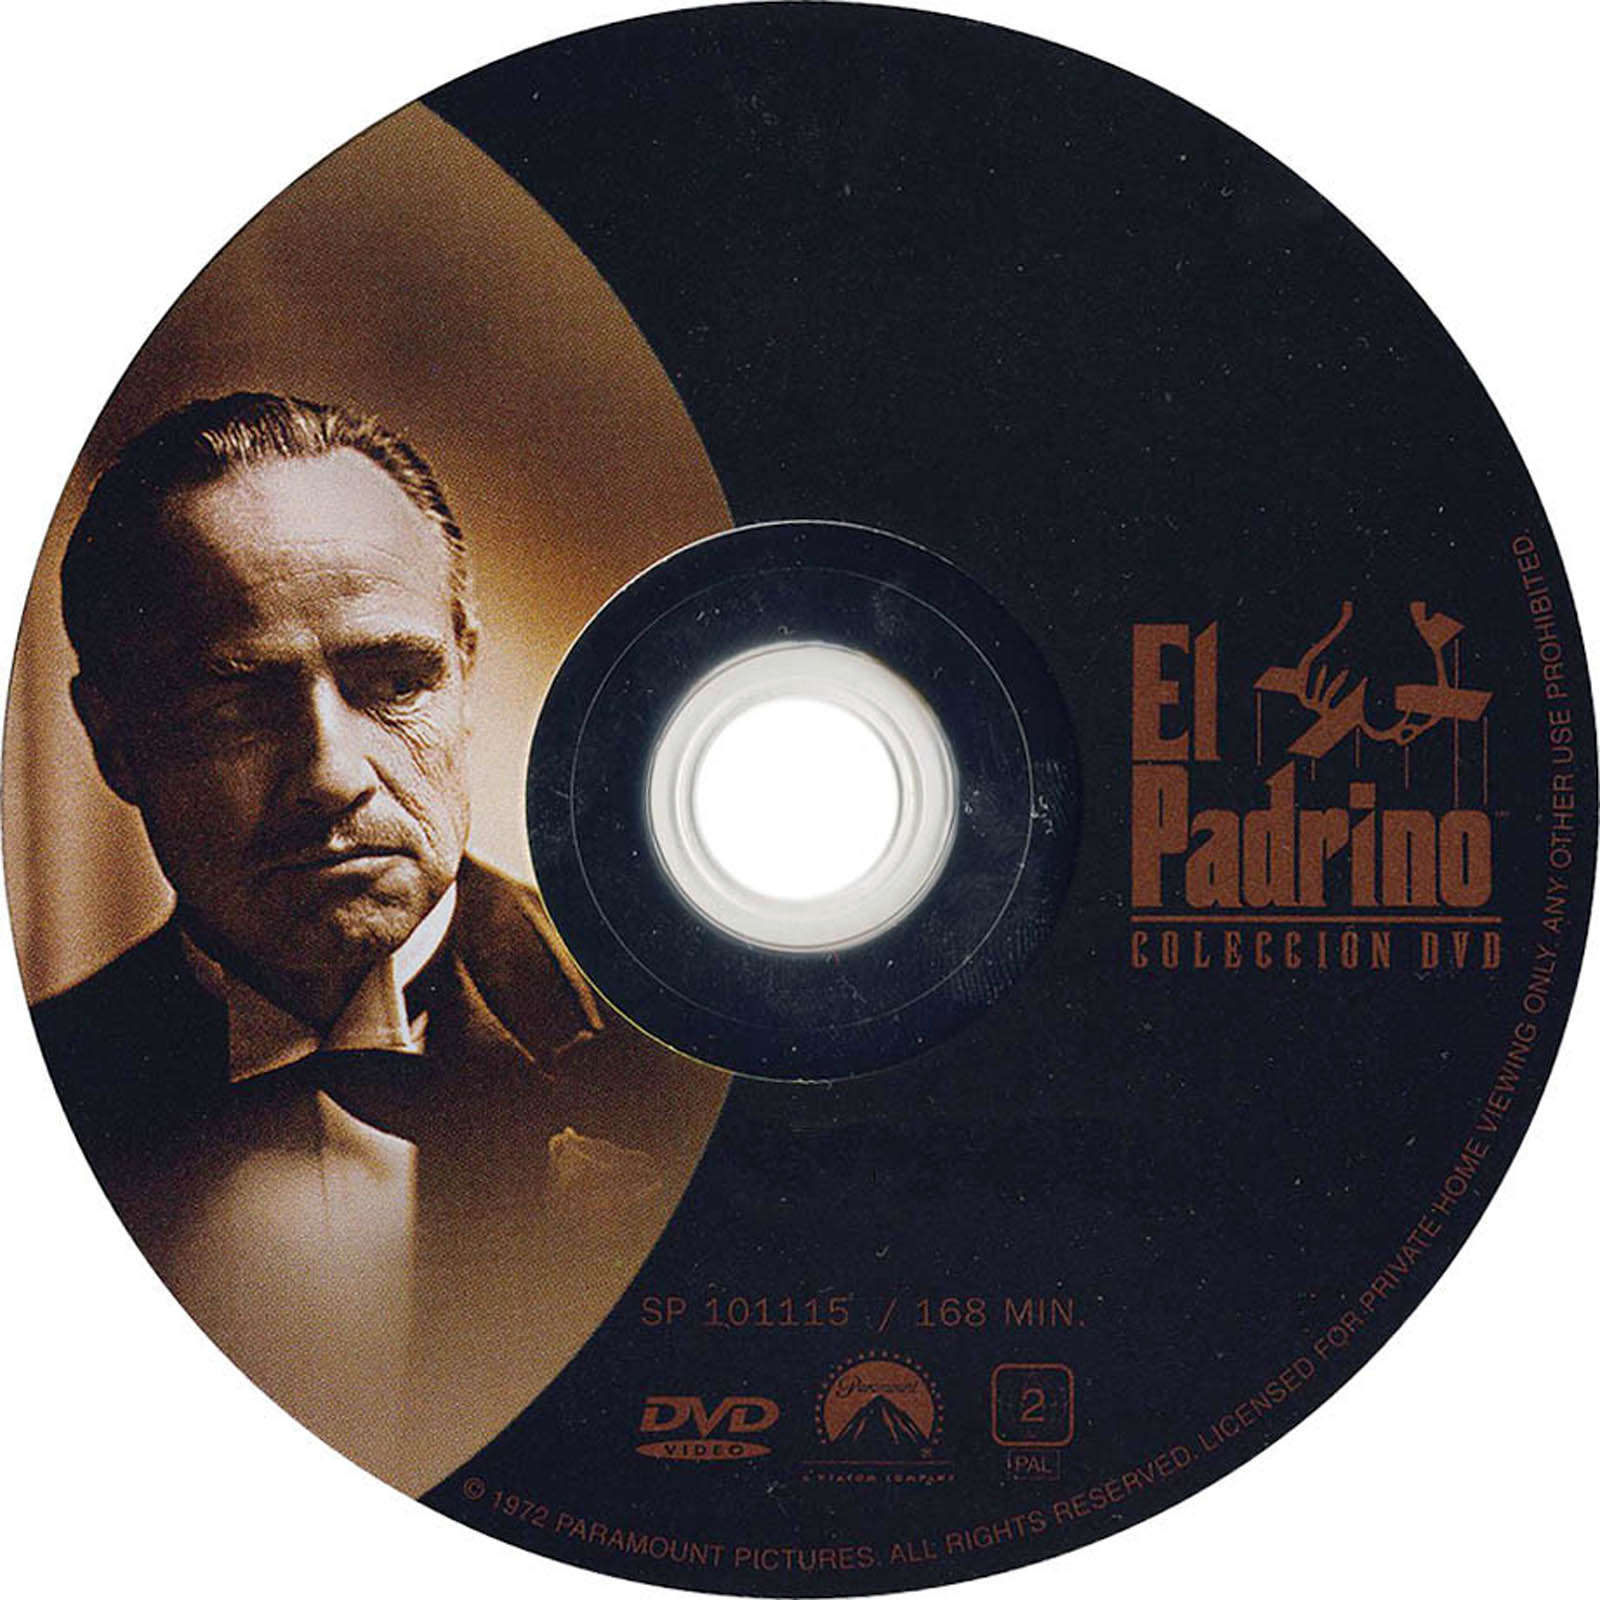 El Padrino The Godfather DVD Label